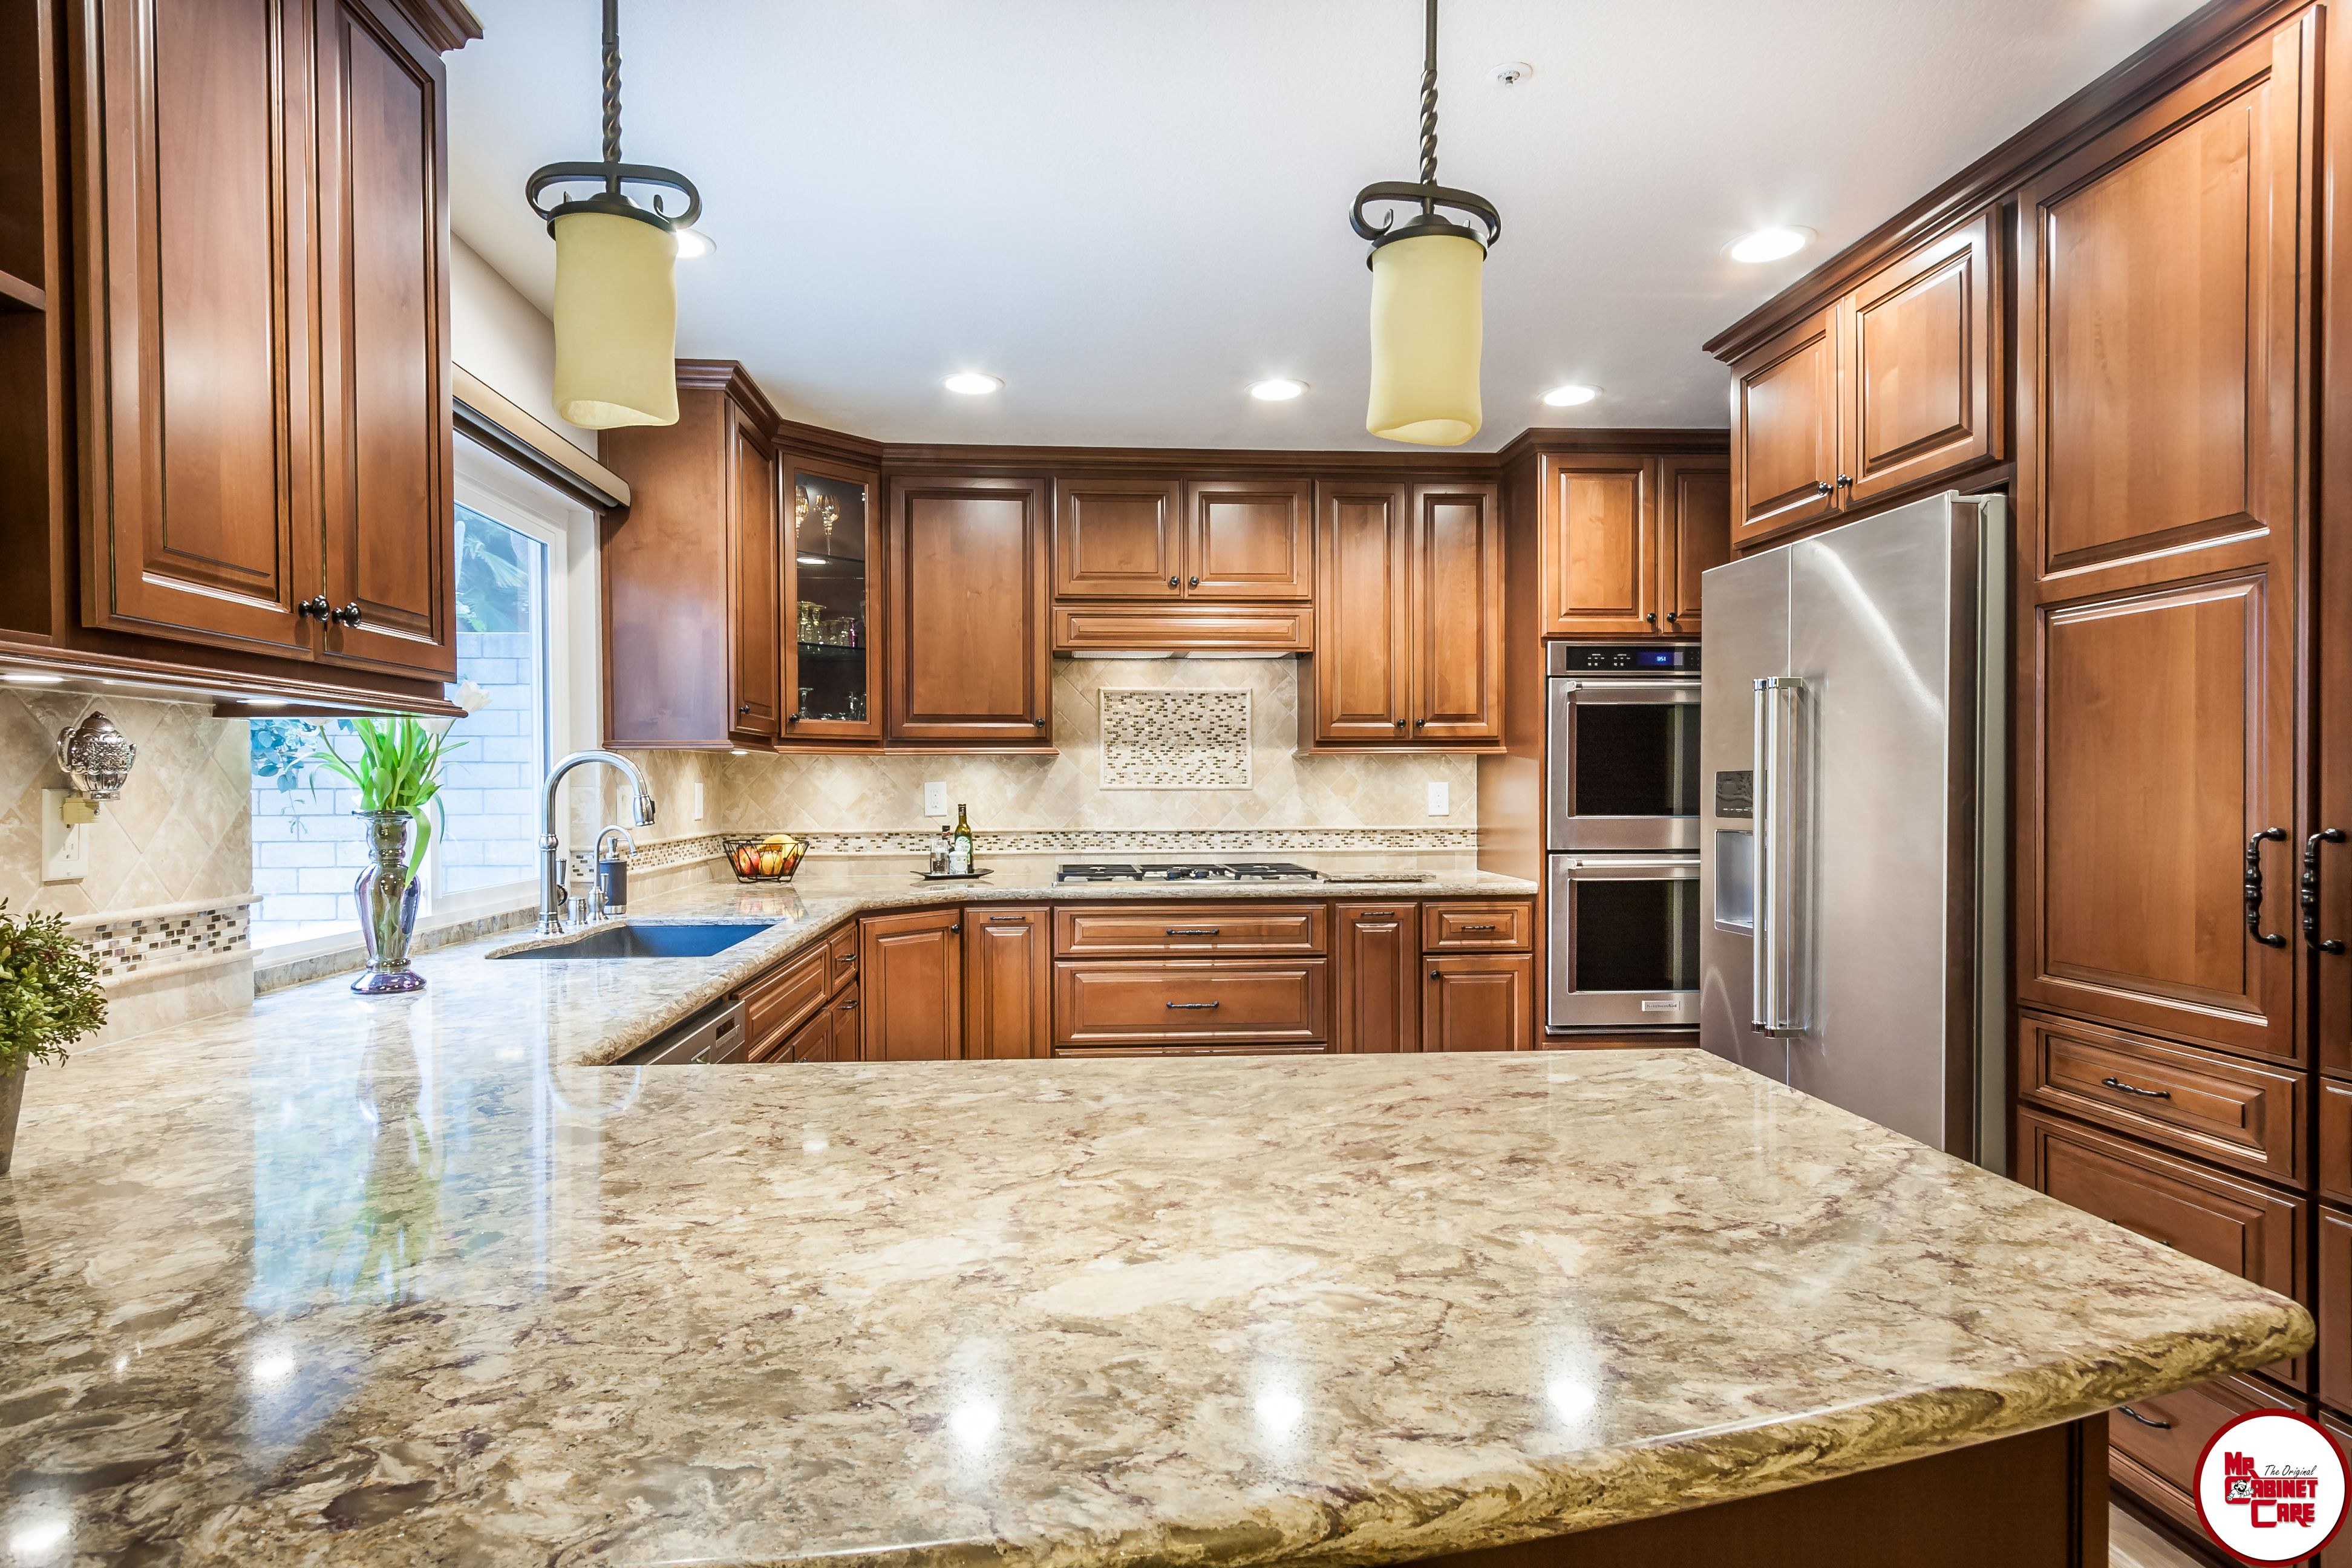 Placentia Traditional Kitchen Remodel Kitchen Kitchenremodel Traditional Kitchen Traditional Kitchen Remodel Kitchen Design